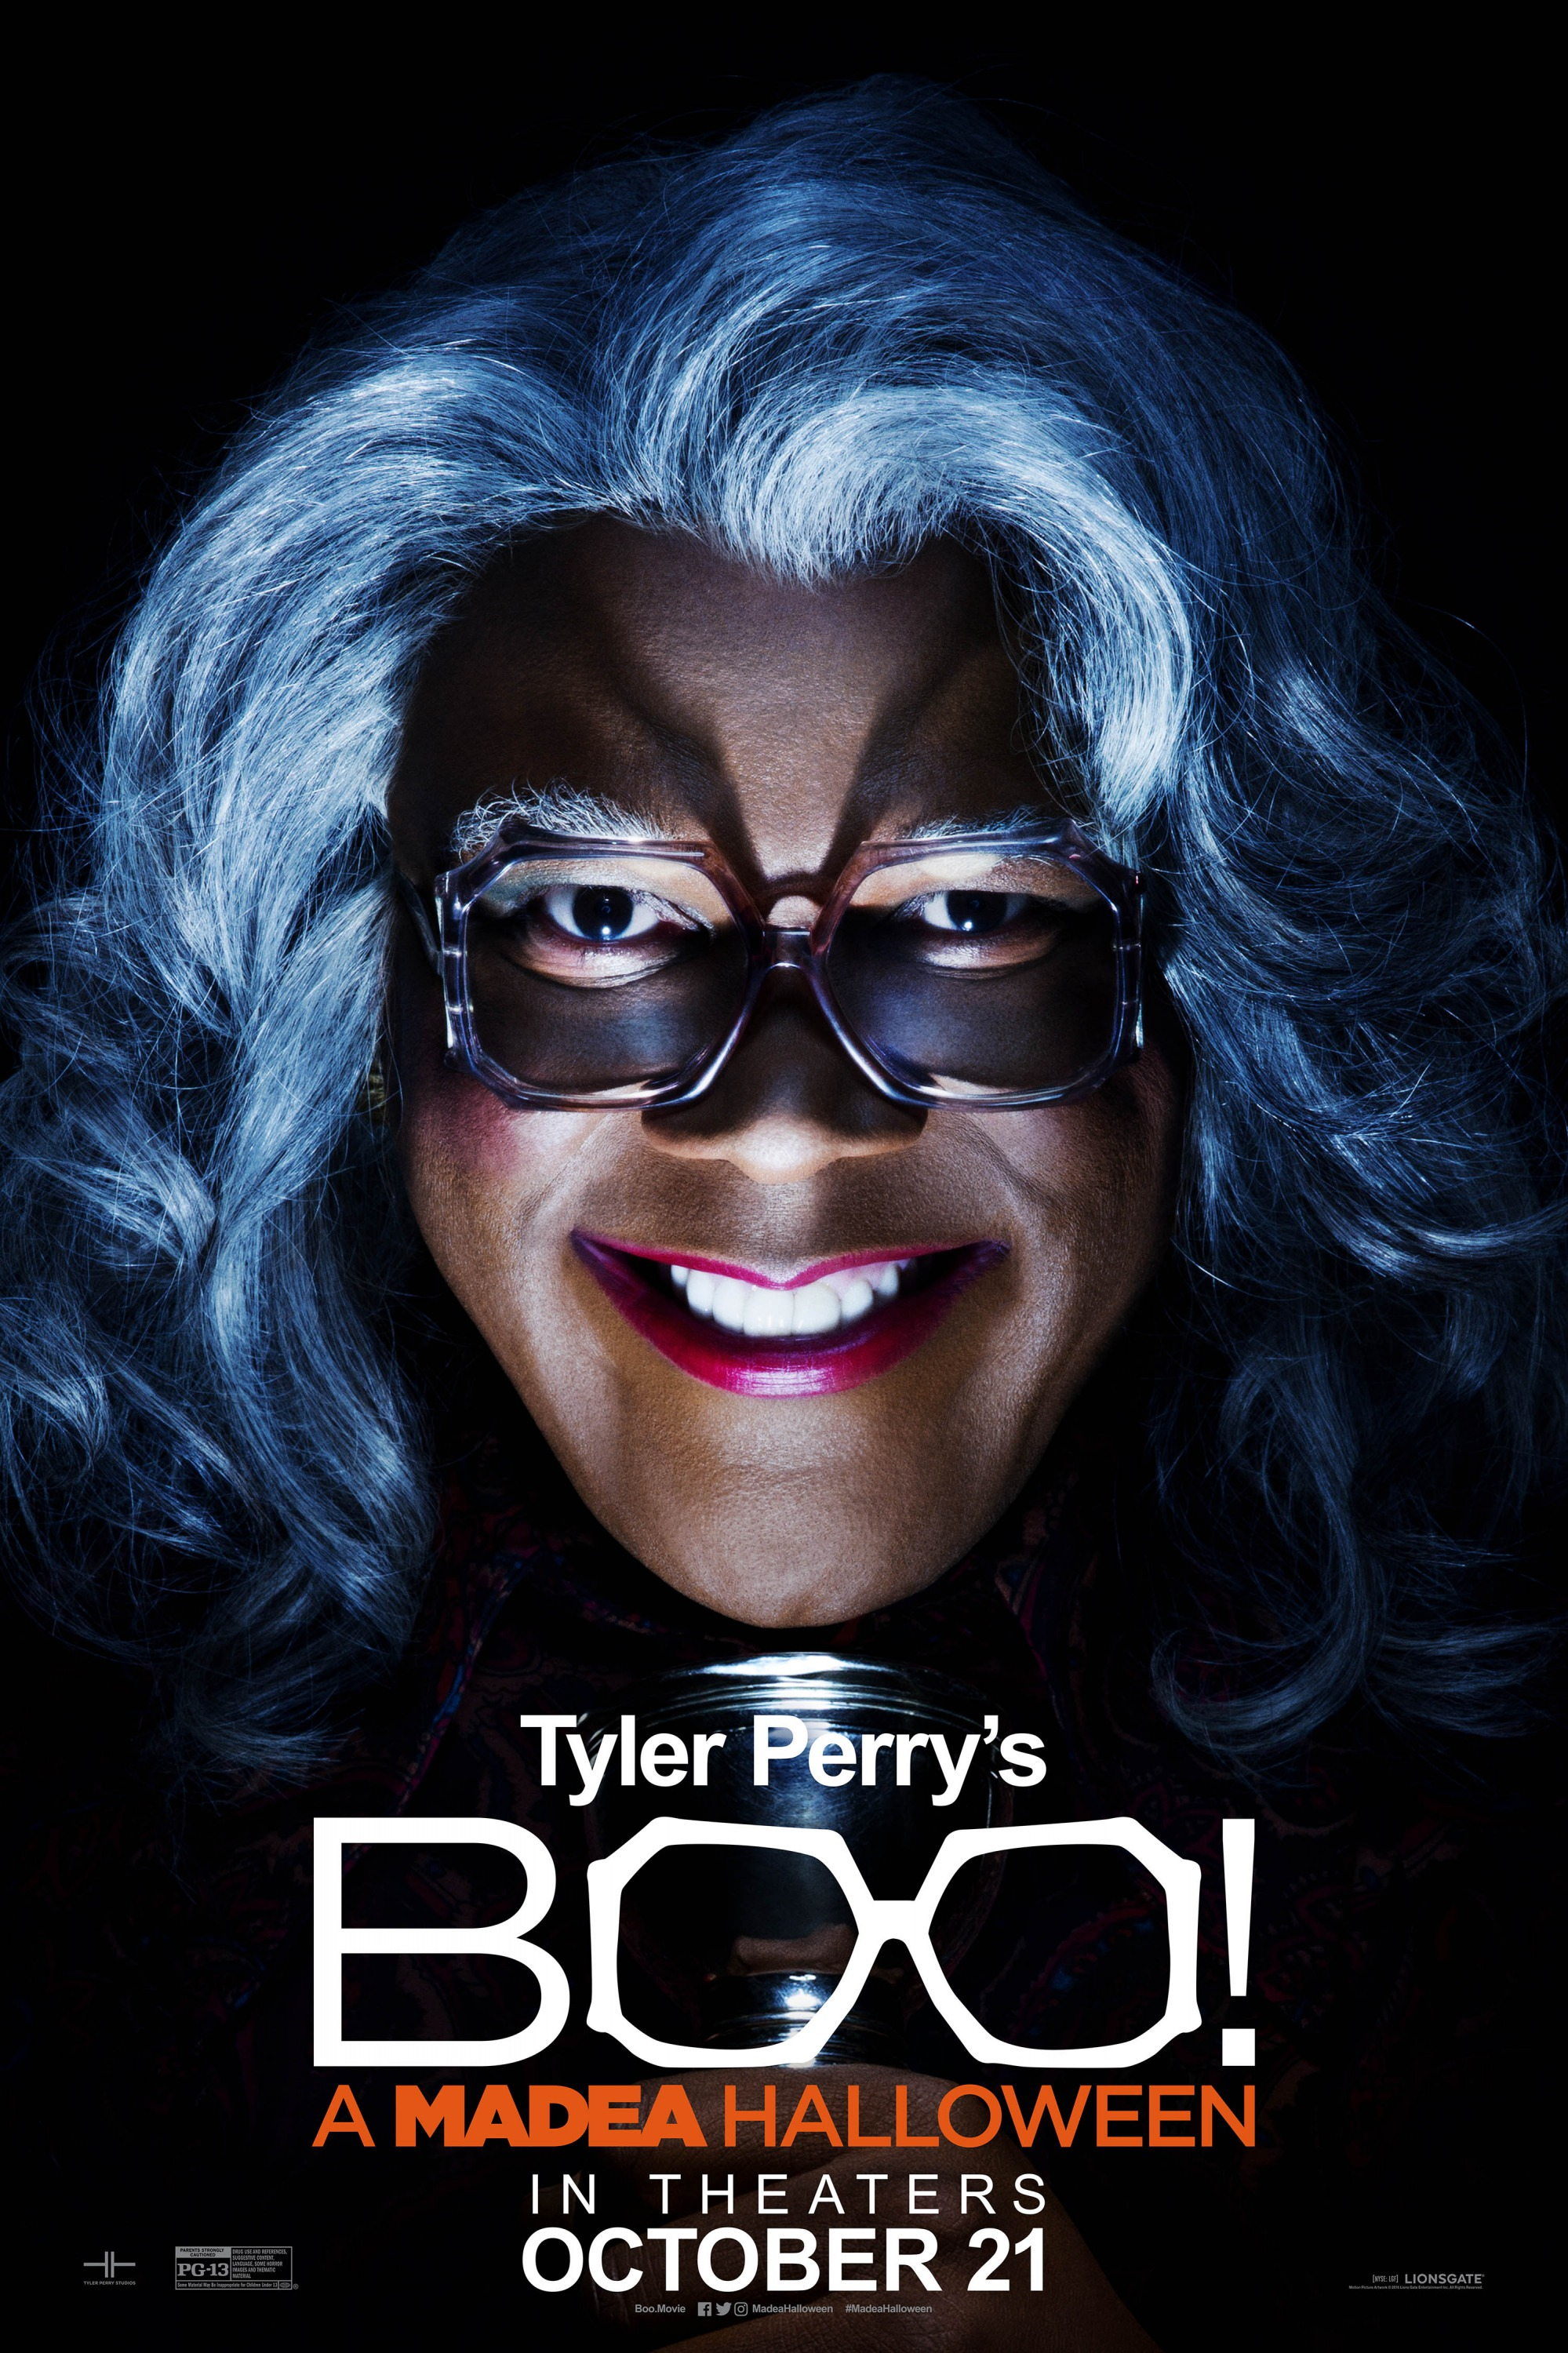 Boo! A Madea Halloween | Halloween Specials Wiki | FANDOM powered ...